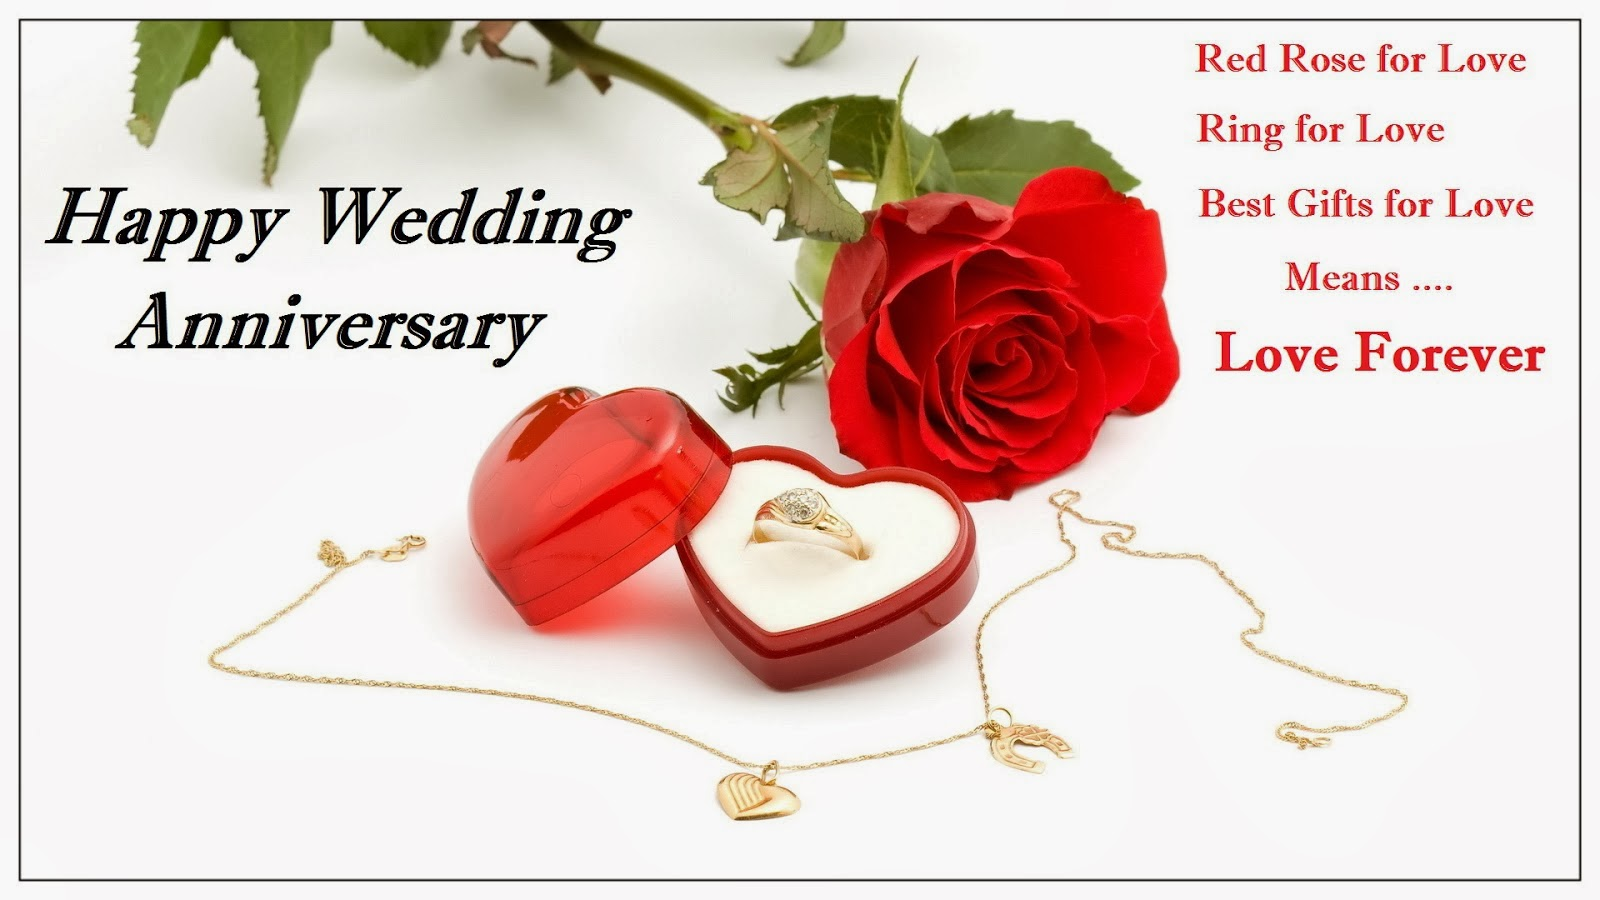 First Wedding Anniversary Gift Ideas South Africa : 1st wedding anniversary celebration ideas in india Top wedding ...